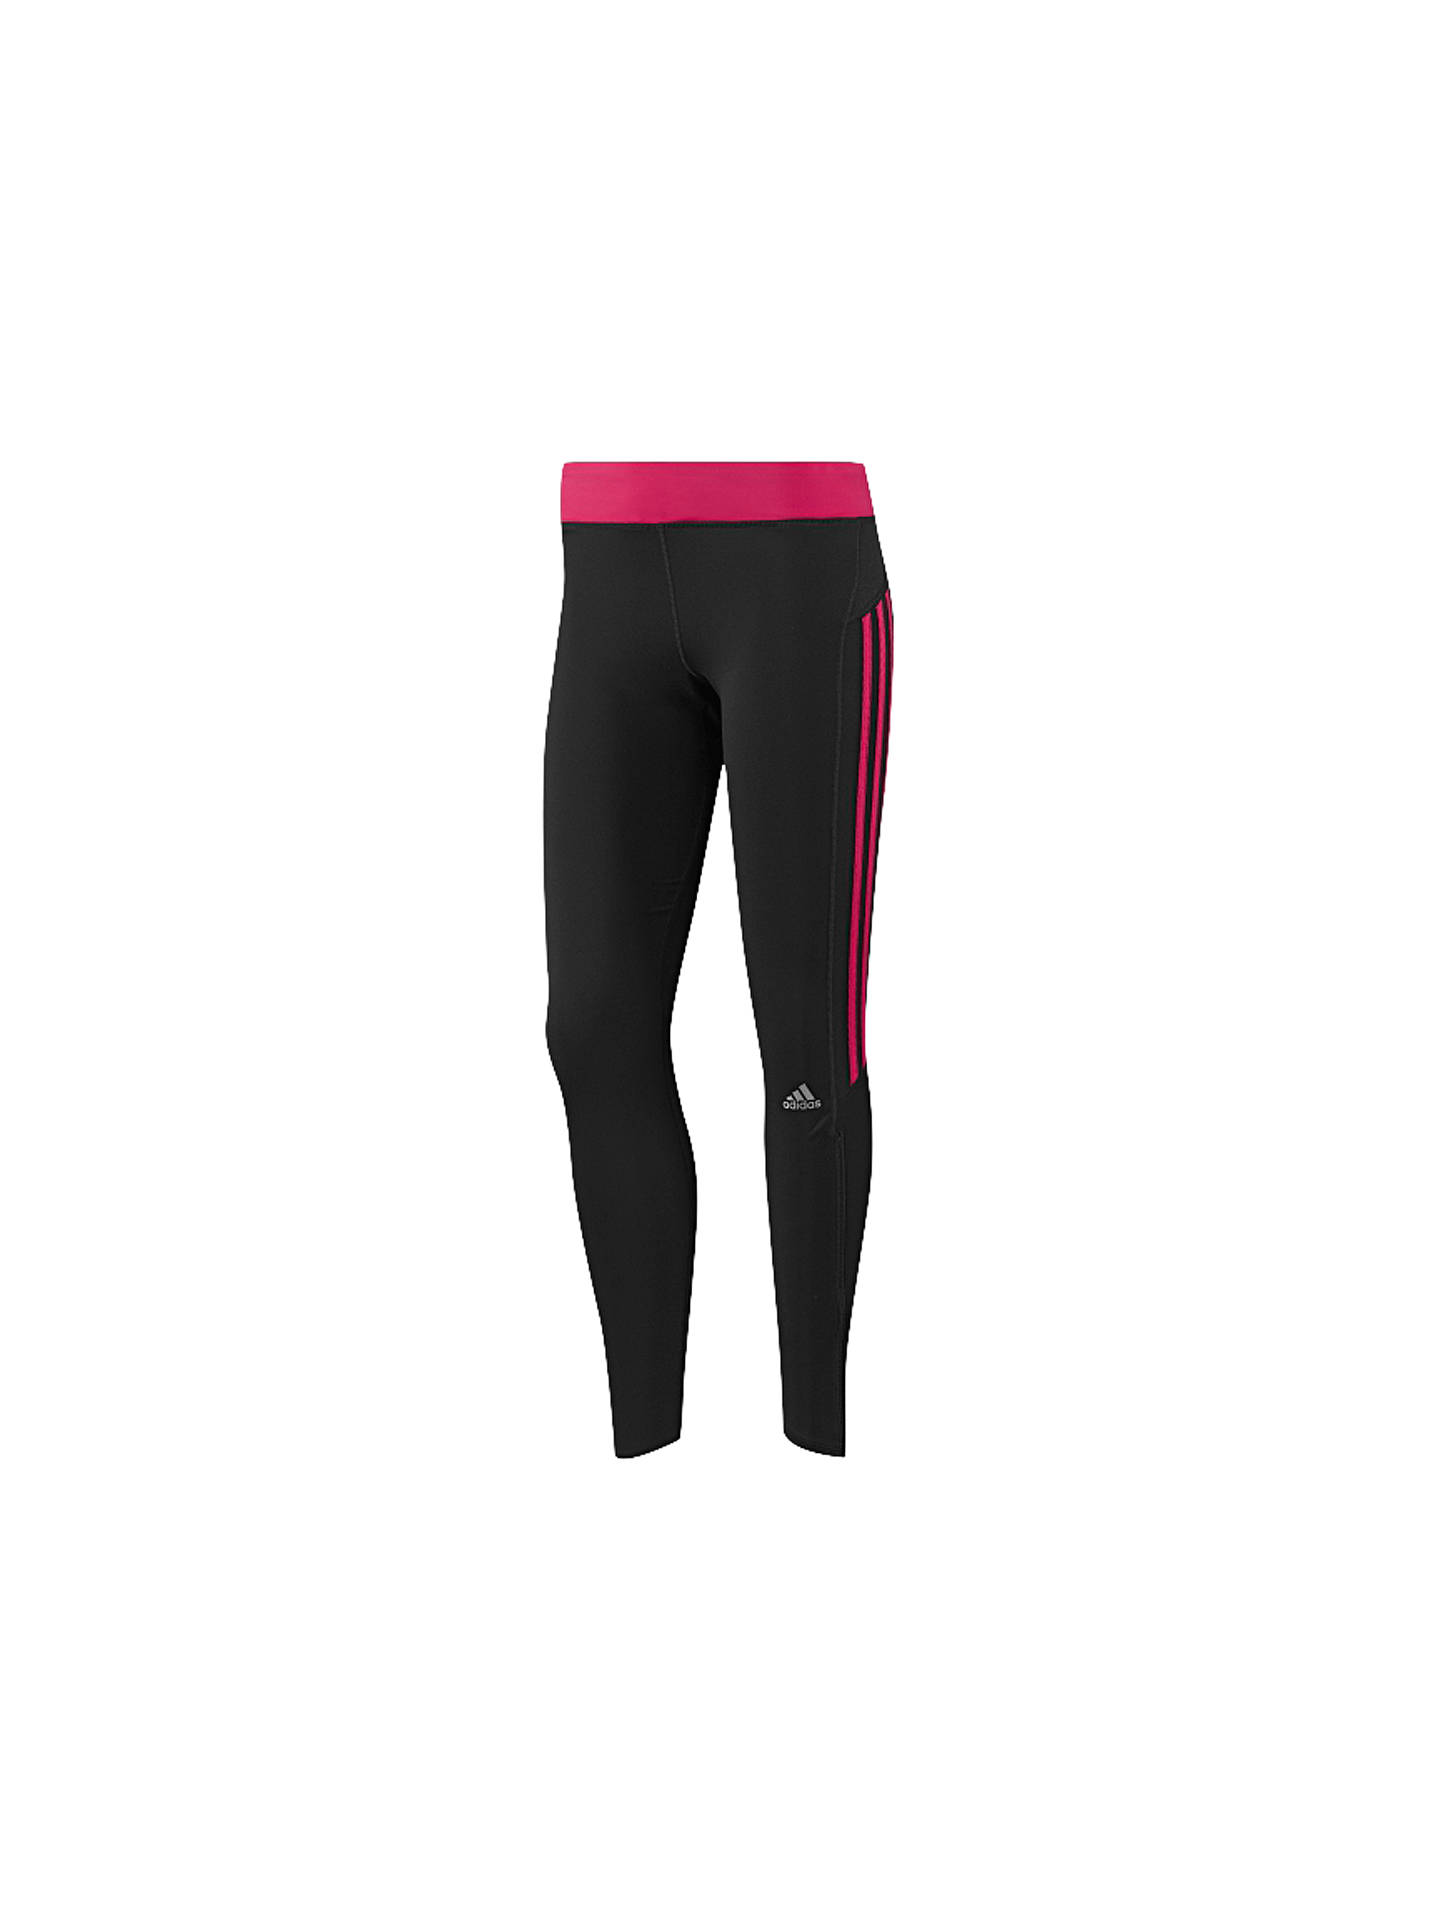 Adidas Women's Response Long Running Tights, BlackPink at